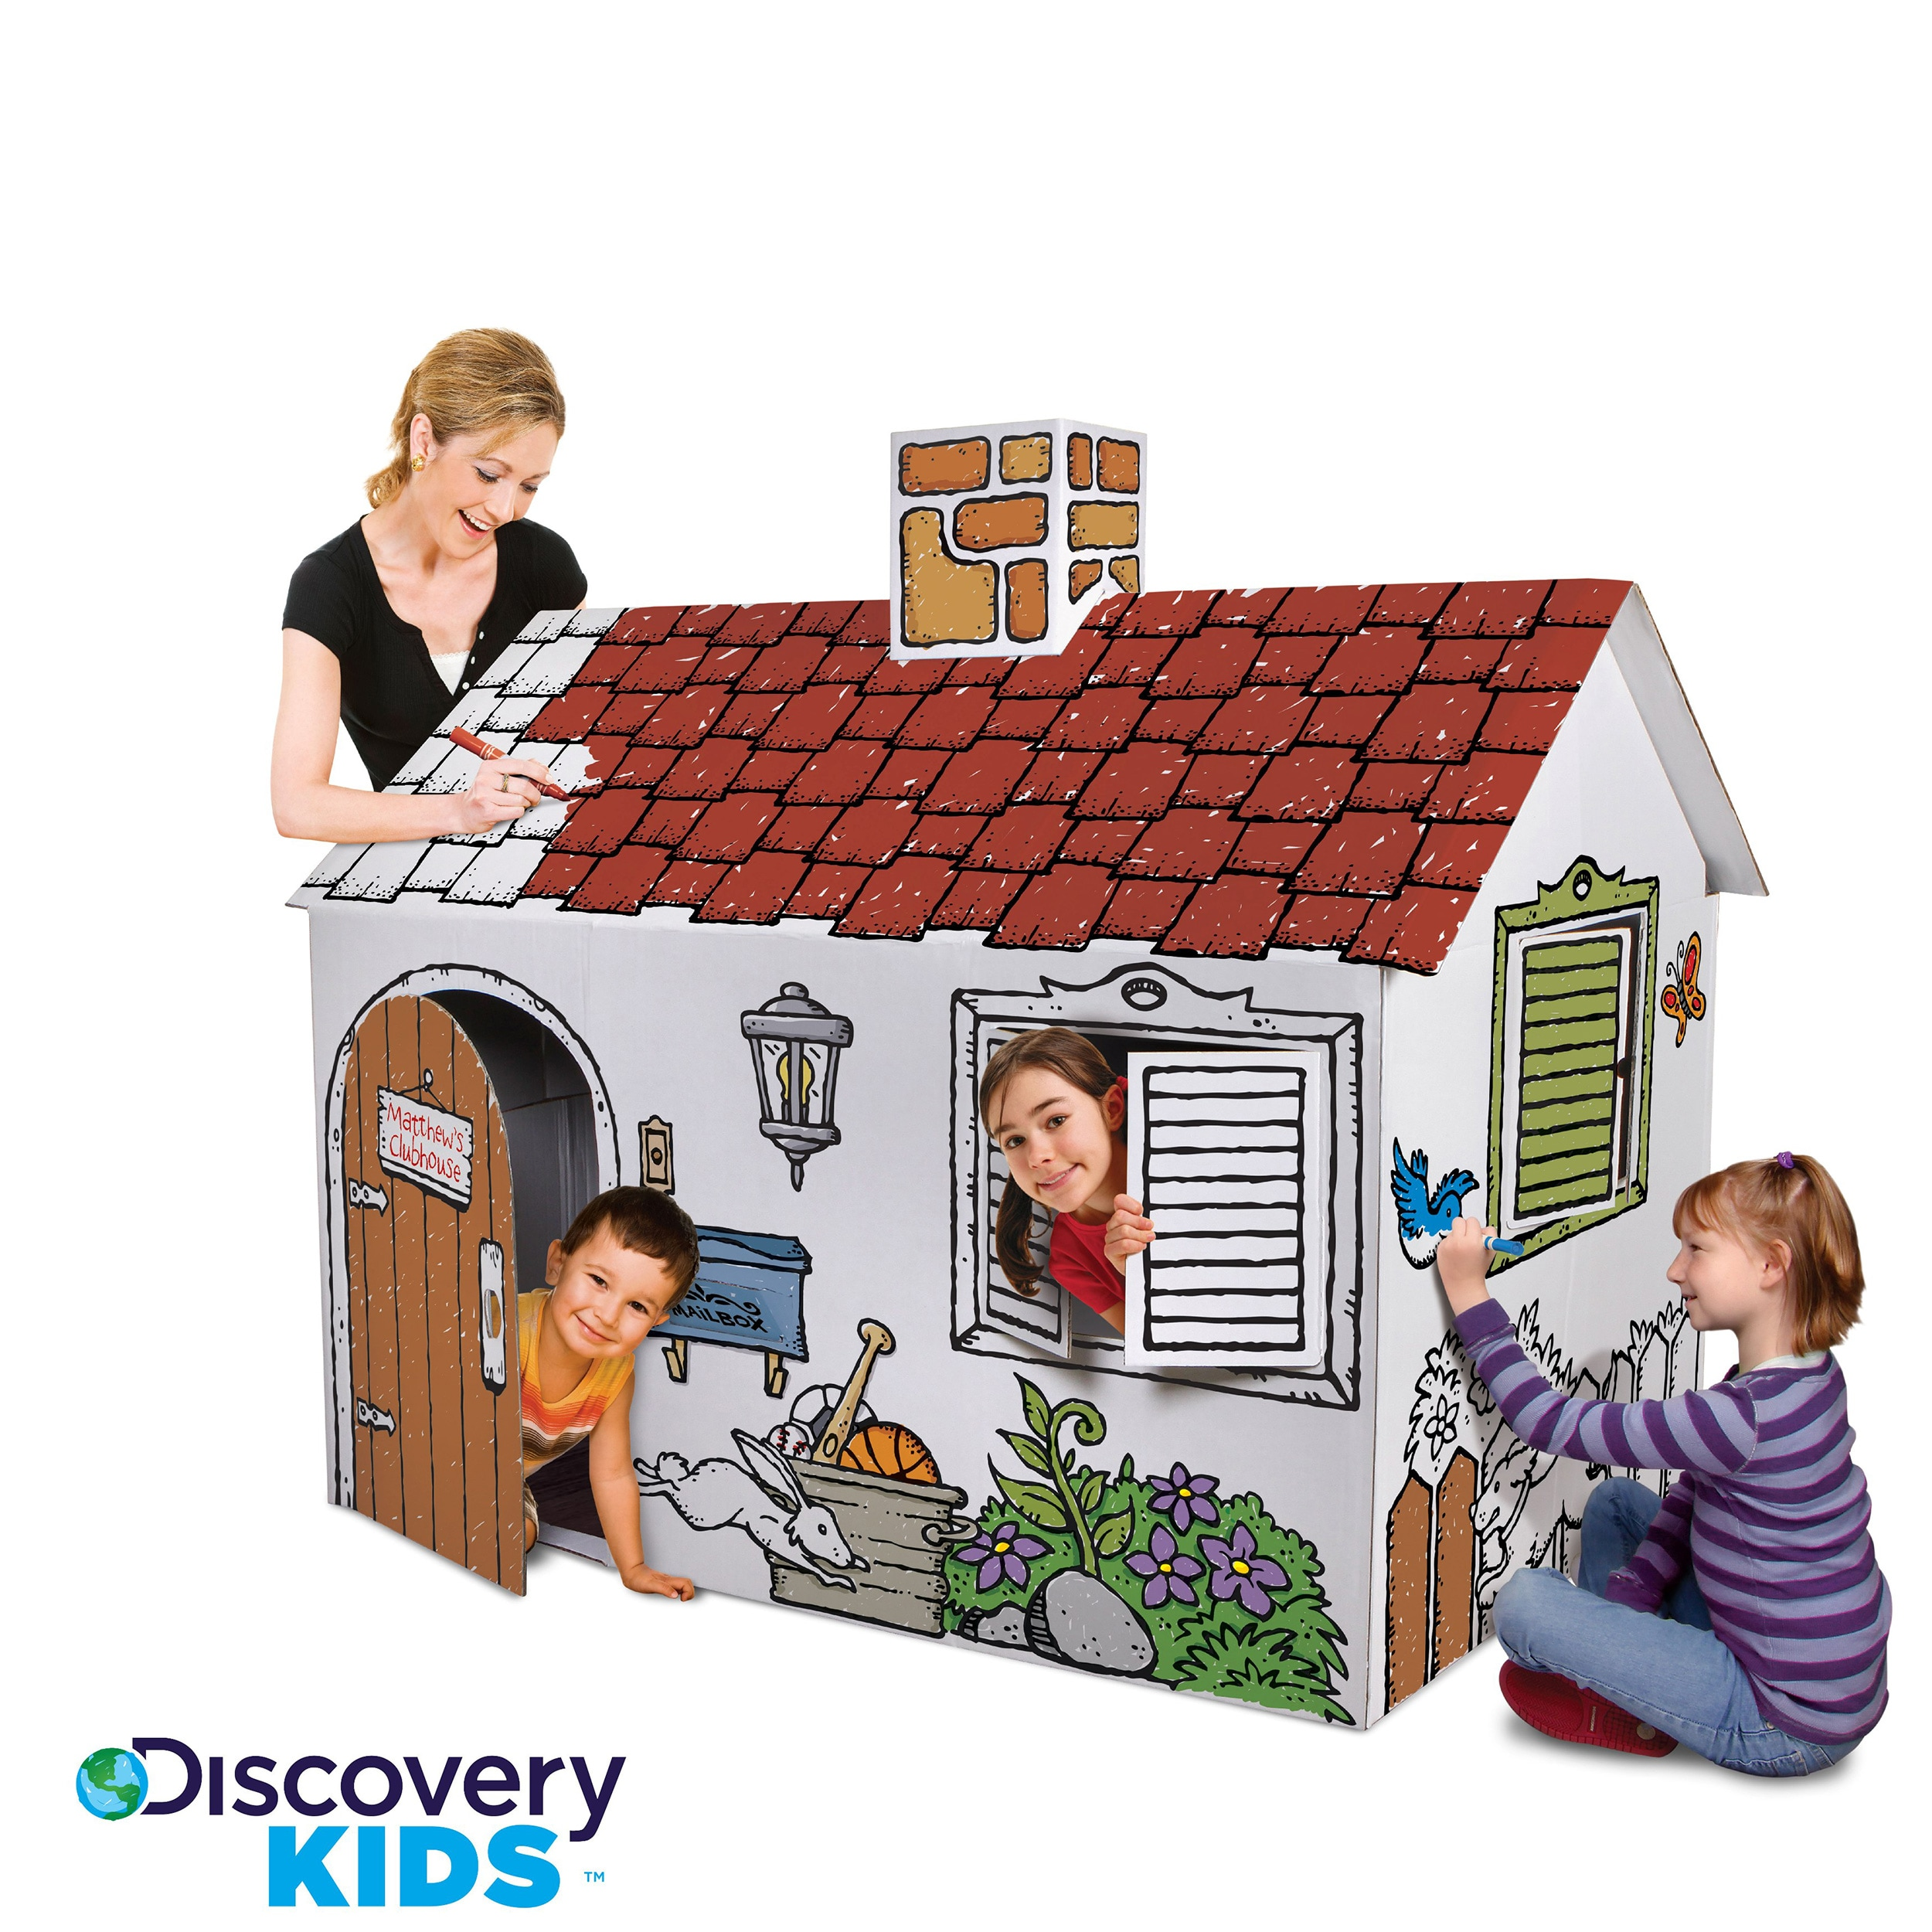 Discovery Kids Cardboard Color and Play Playhouse - Thumbnail 0